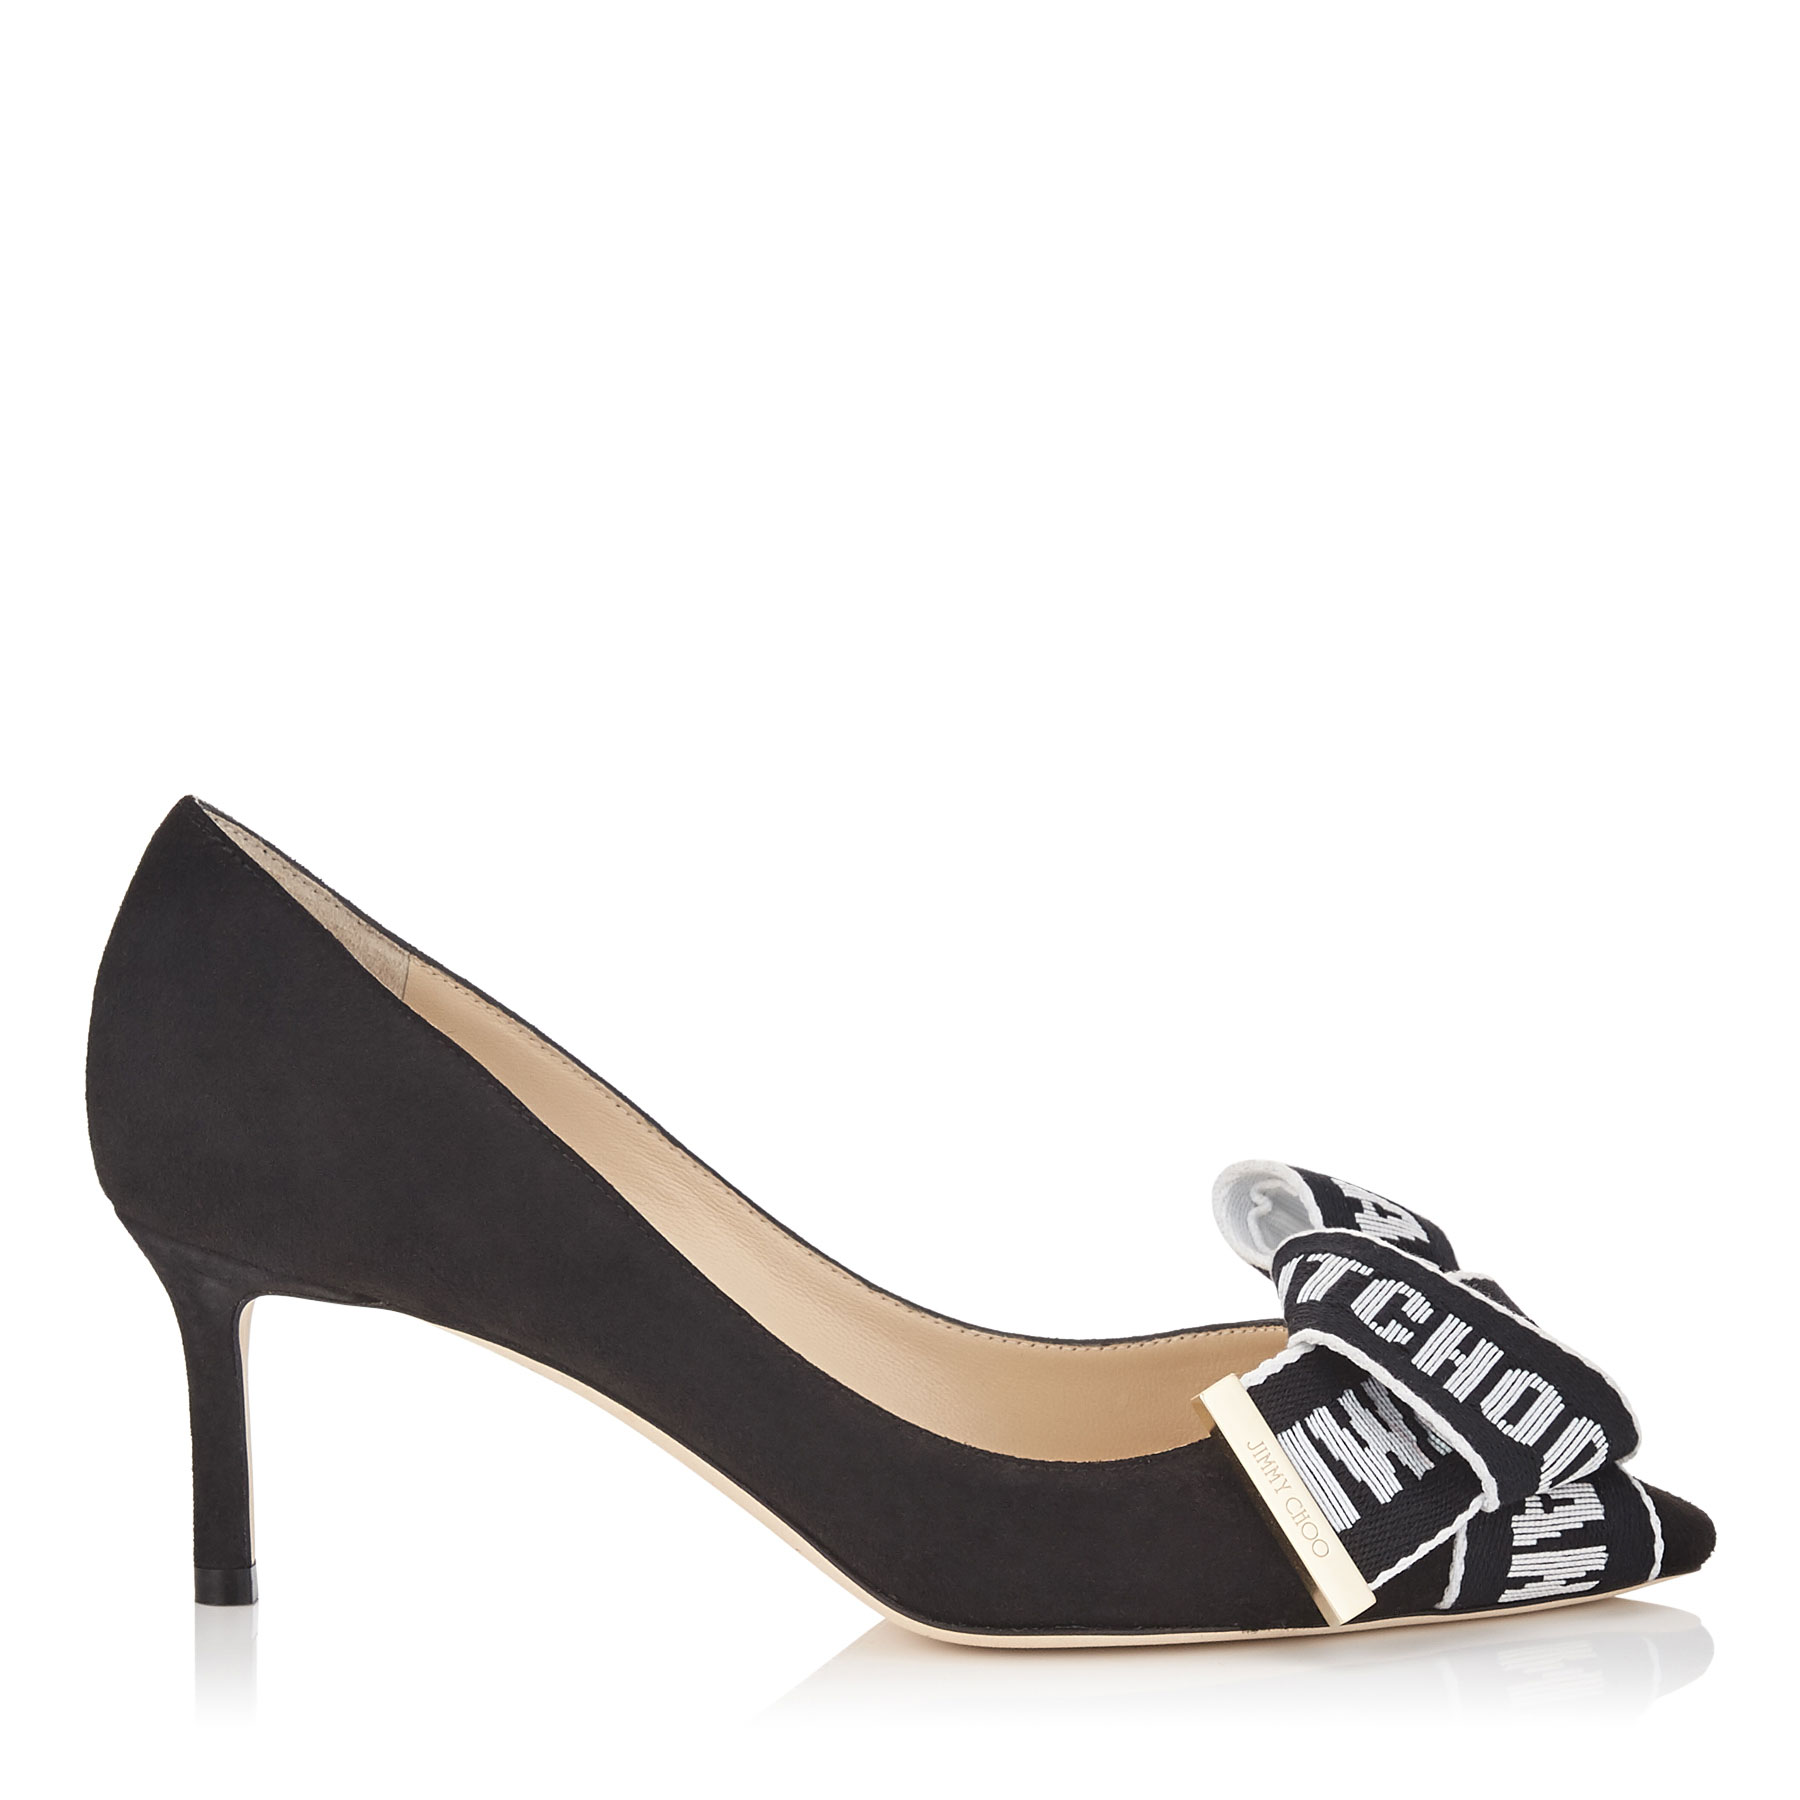 TEGAN 60 Black Suede Pointy Toe Pumps with Logo Tape Bow Detailing by Jimmy Choo